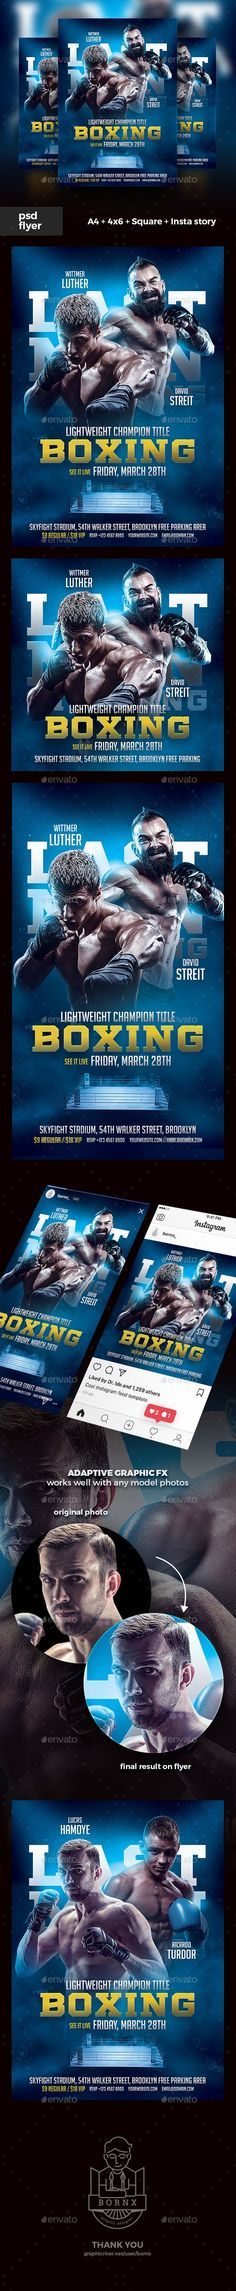 Buy Boxing Flyer by bornx on GraphicRiver. DESCRIPTION Boxing Flyer Template – Boxing flyer template PSD for Photoshop perfect to promote your boxing match or f. Sports Flyer, Color Effect, Model Photos, Flyer Template, Instagram Story, Photoshop, Boxing, Templates, Freedom